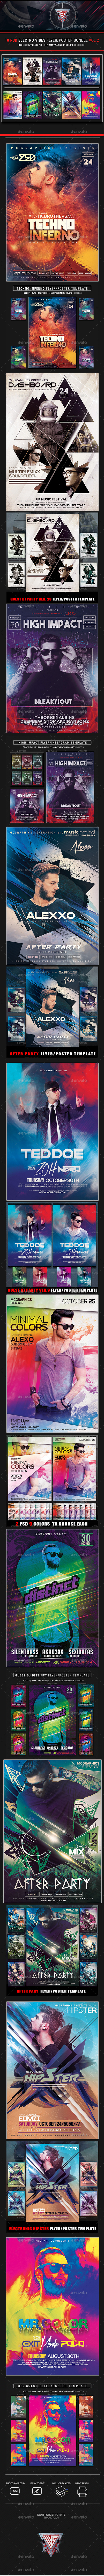 10 PSD Electro Vibes Flyer/Poster Template Bundle Vol. 2 DJ EDITION - Flyers Print Templates